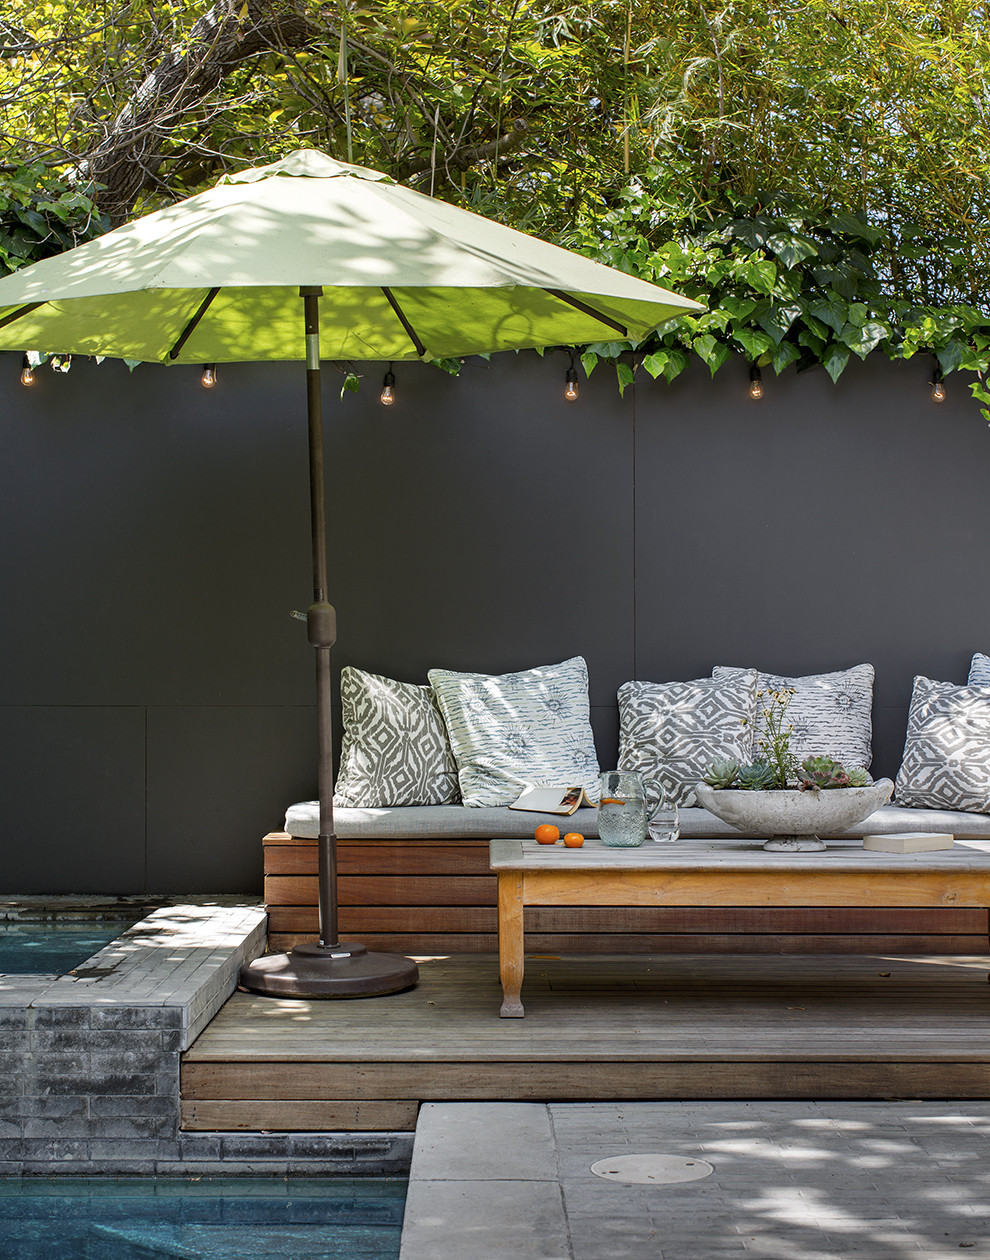 Sun shade outdoor patio design ideas lonny for Outside patio design ideas